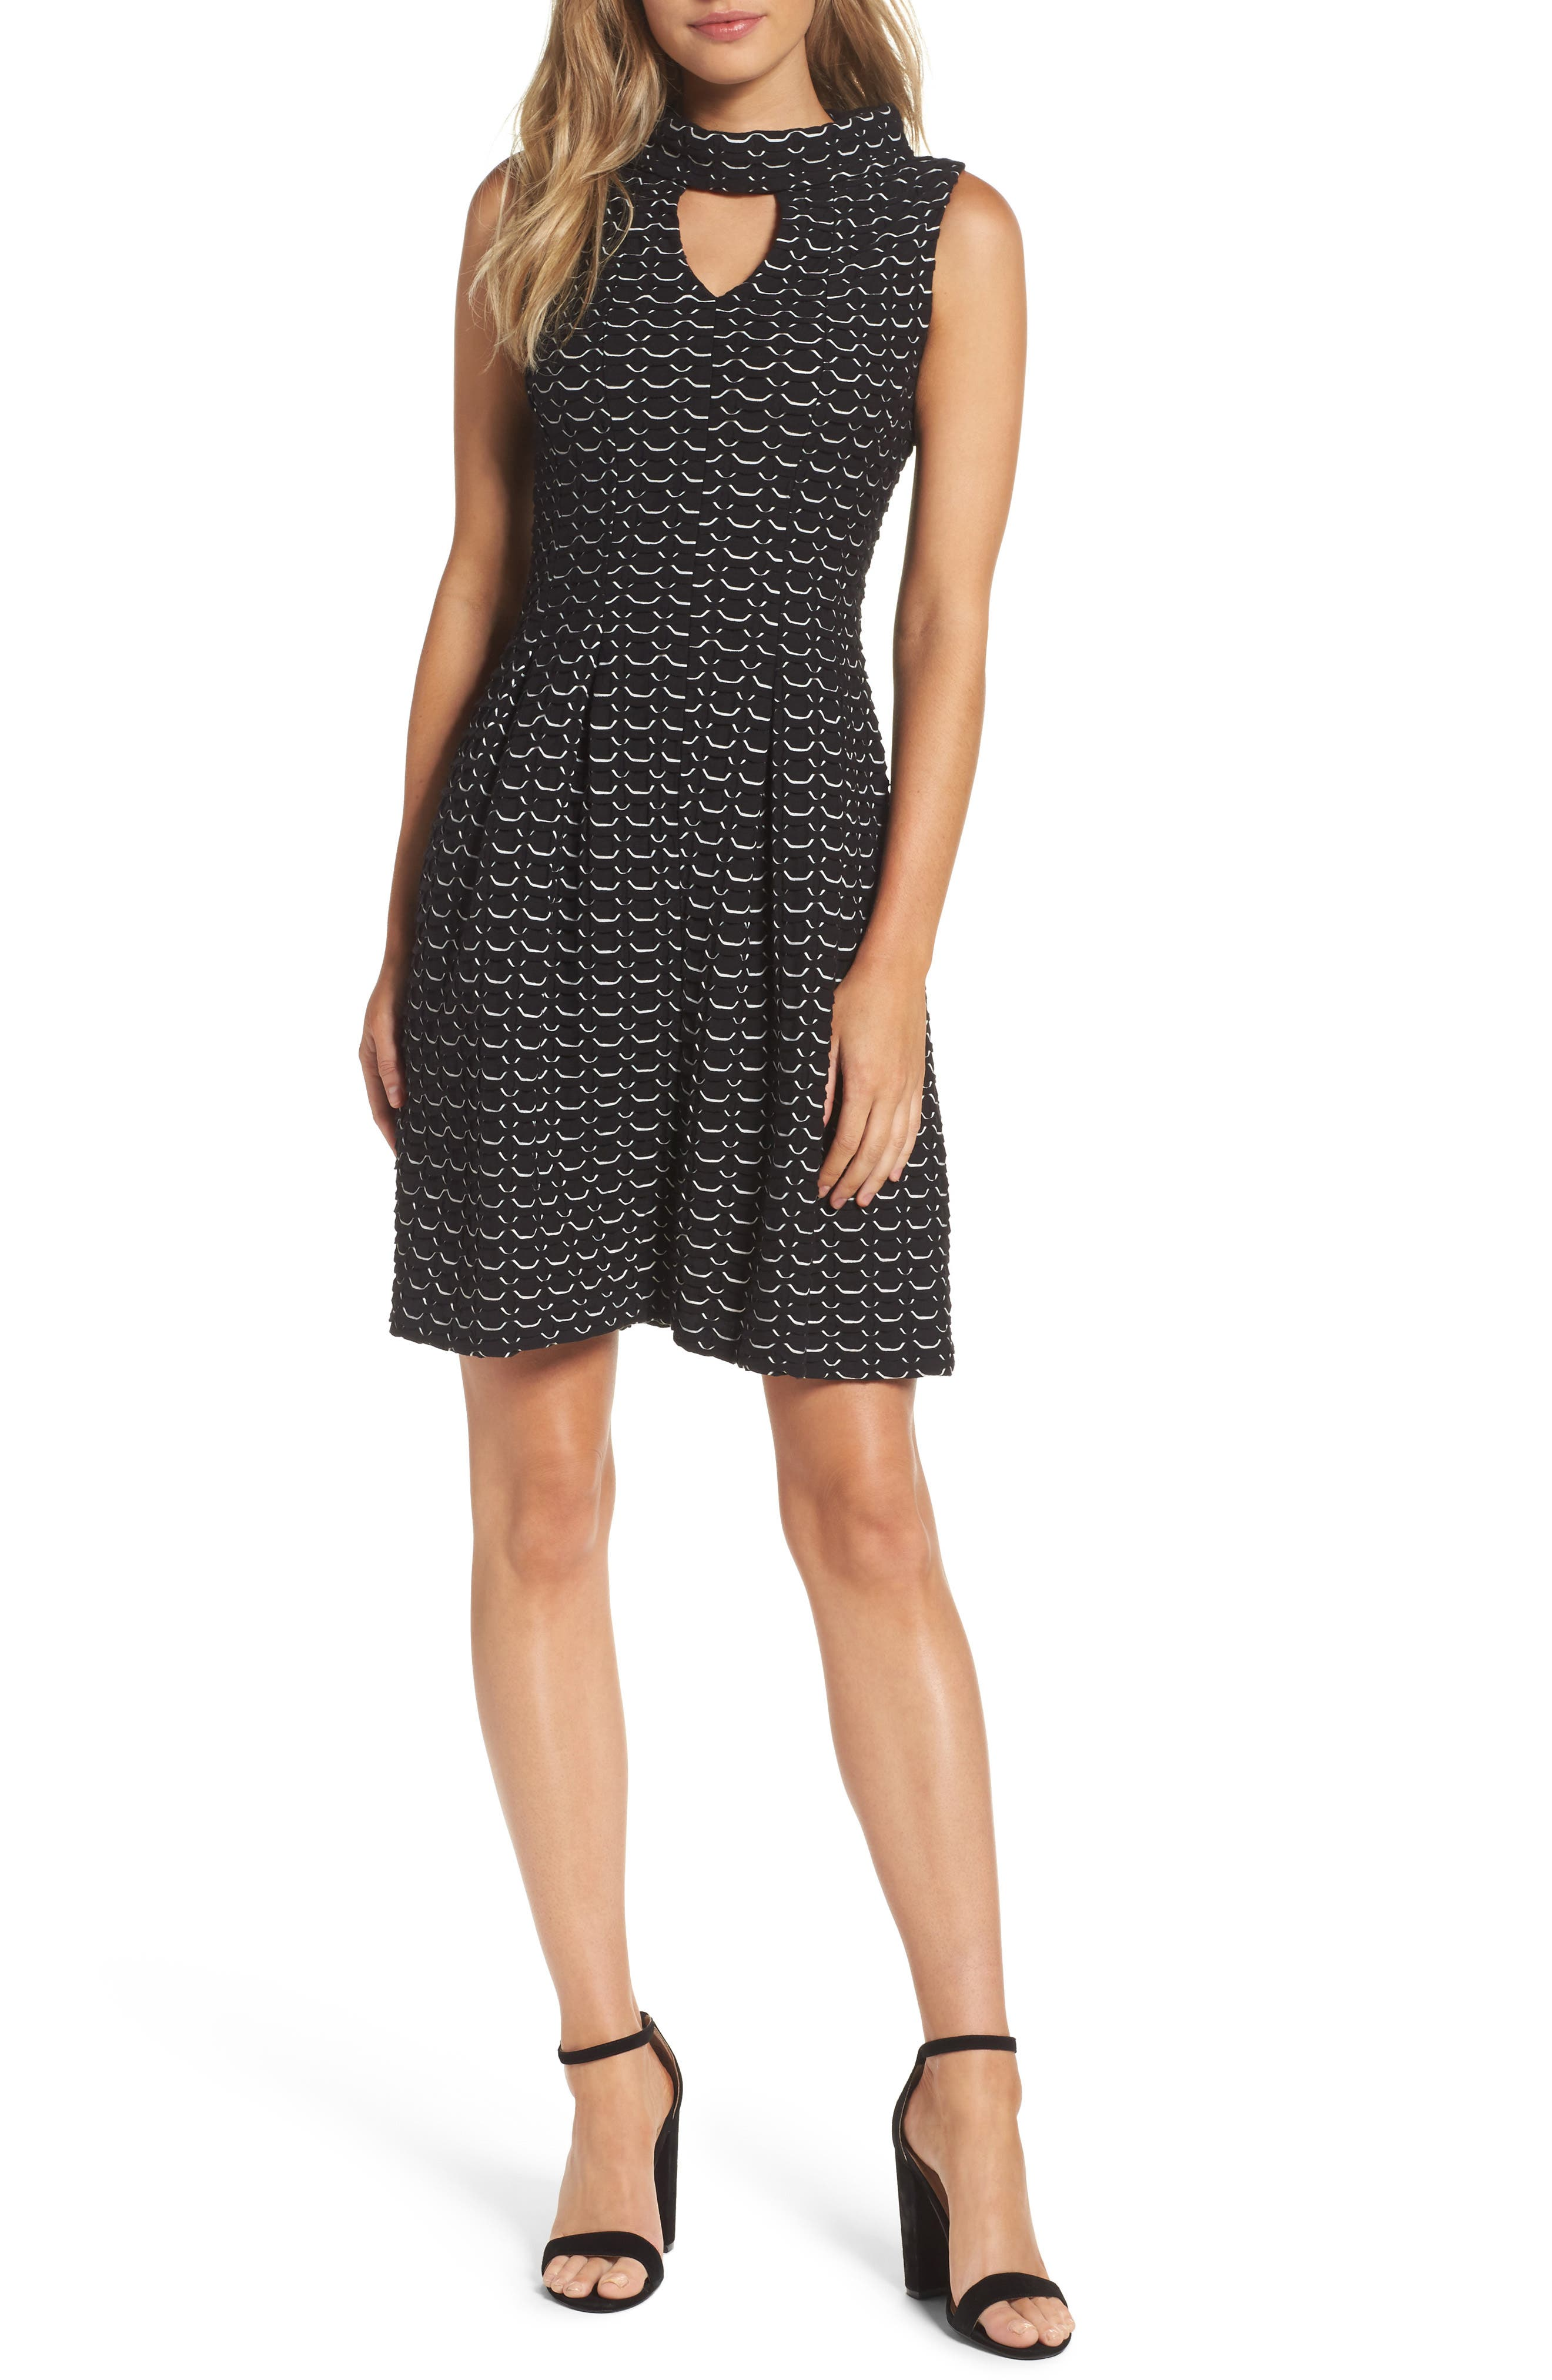 Taylor Dresses Textured Knit Fit & Flare Dress